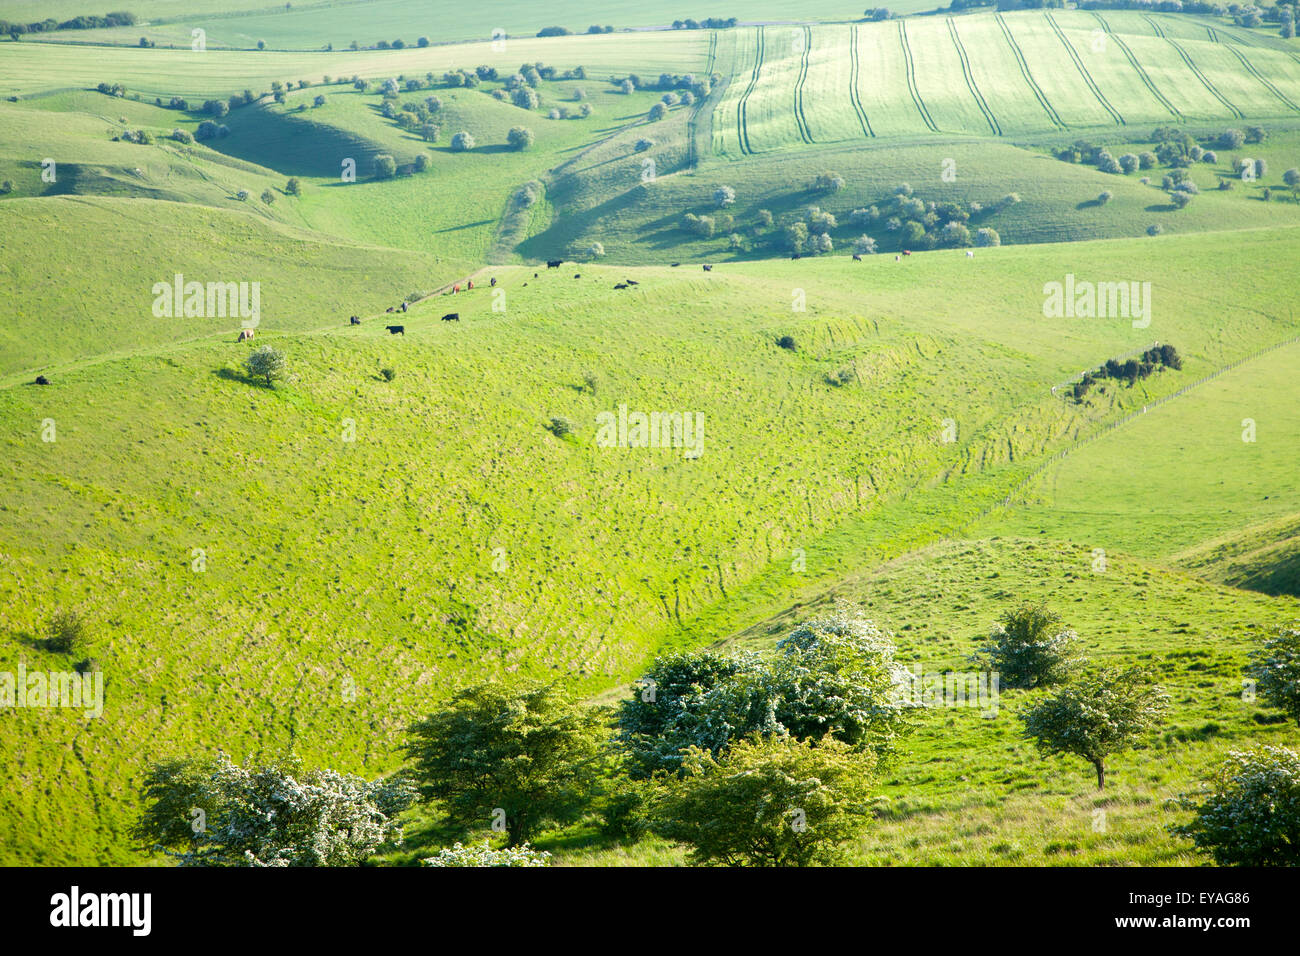 Rolling hills and dry valleys upland chalk landscape, form Cherhill Down, Wiltshire, England, UK - Stock Image